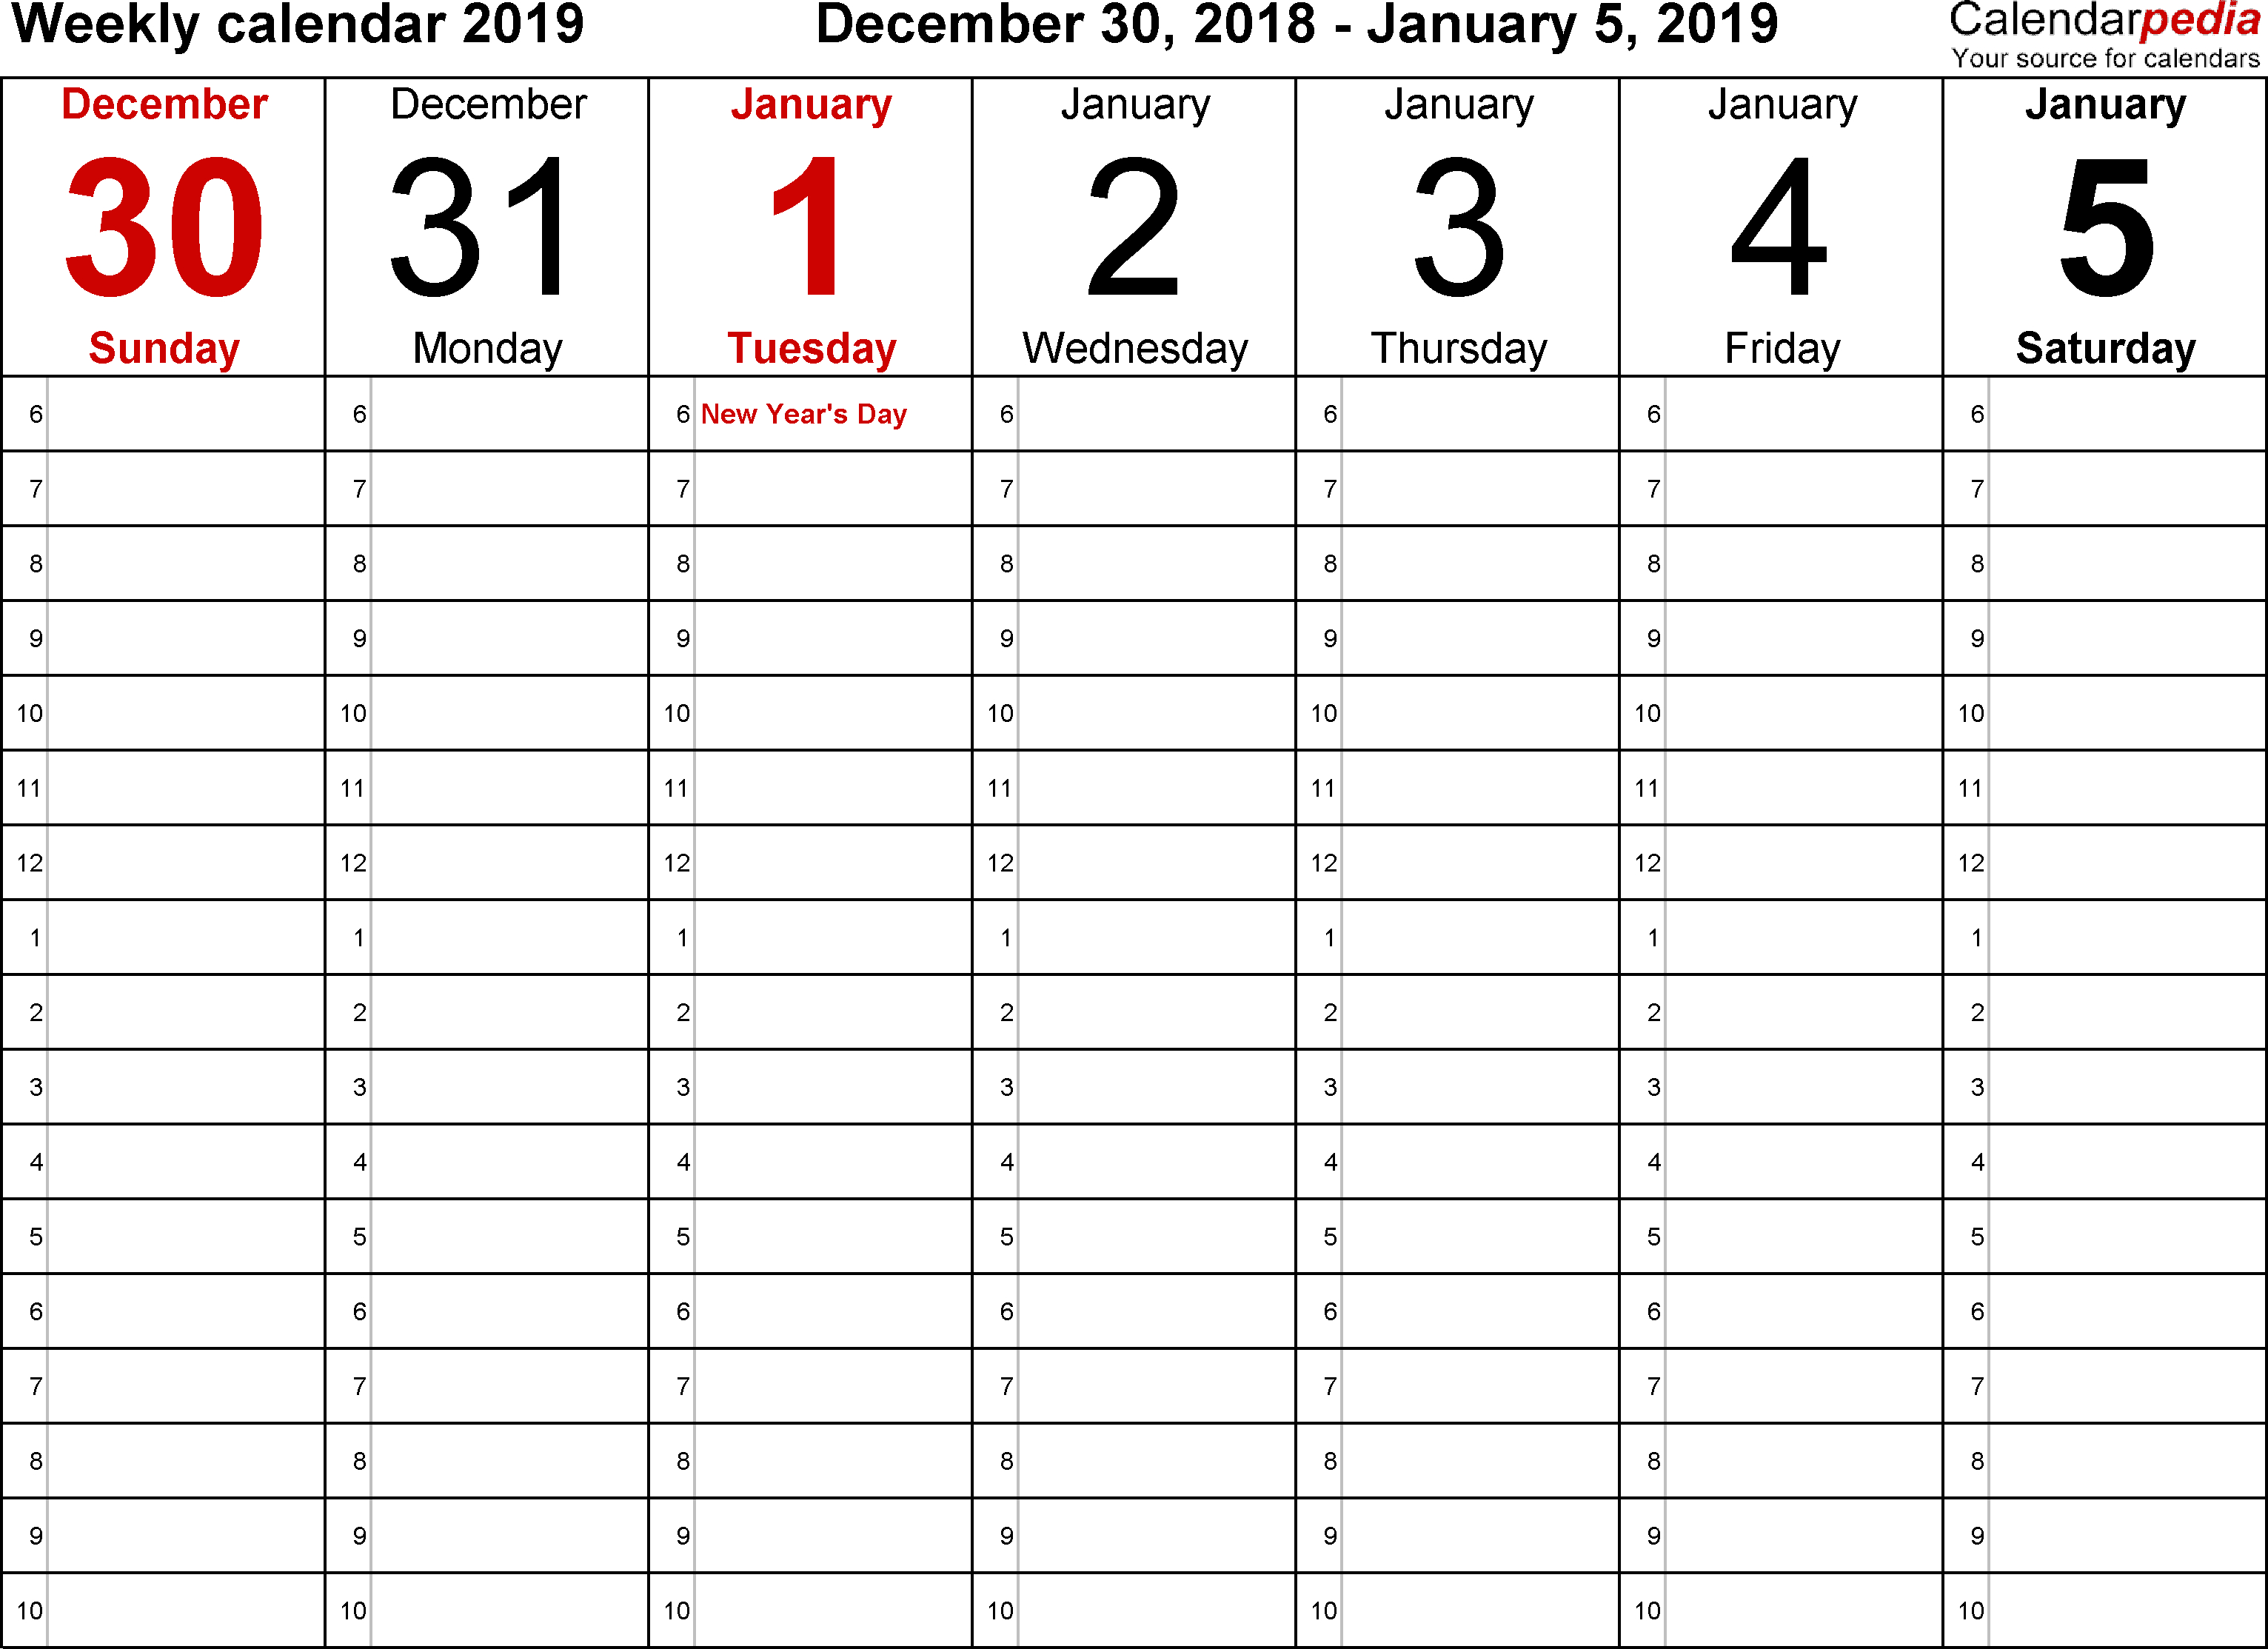 Weekly Calendars 2019 For Excel  12 Free Printable Templates intended for 7 Day Weekly Calendar Template